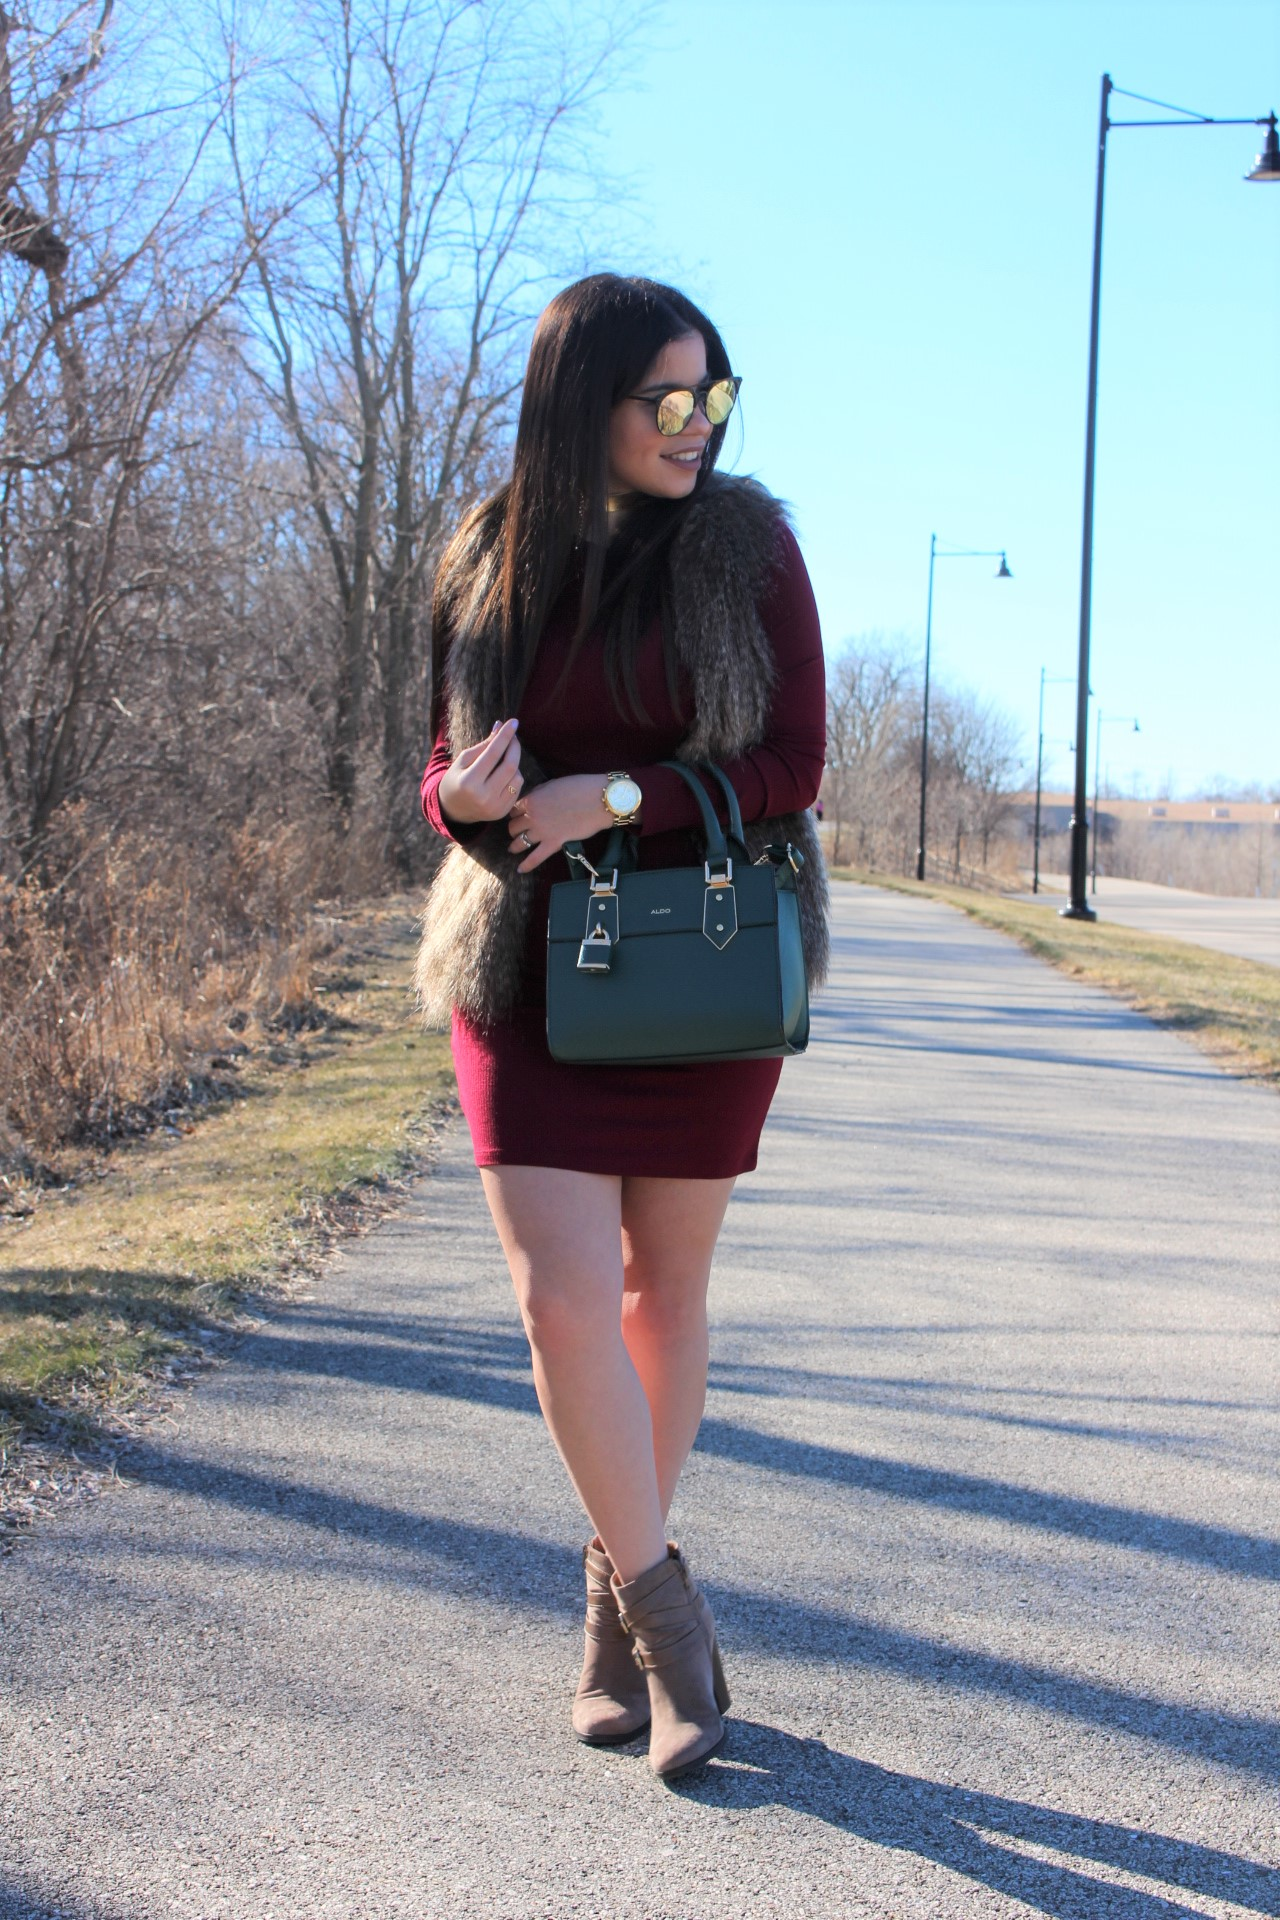 vestido vinotinto burgundy dress quay sunglasses aldo handbag fall winter spring outfit aldo green handbag michael kors watch justfab booties casual outfit mkby alejandra avila tufashionpetite